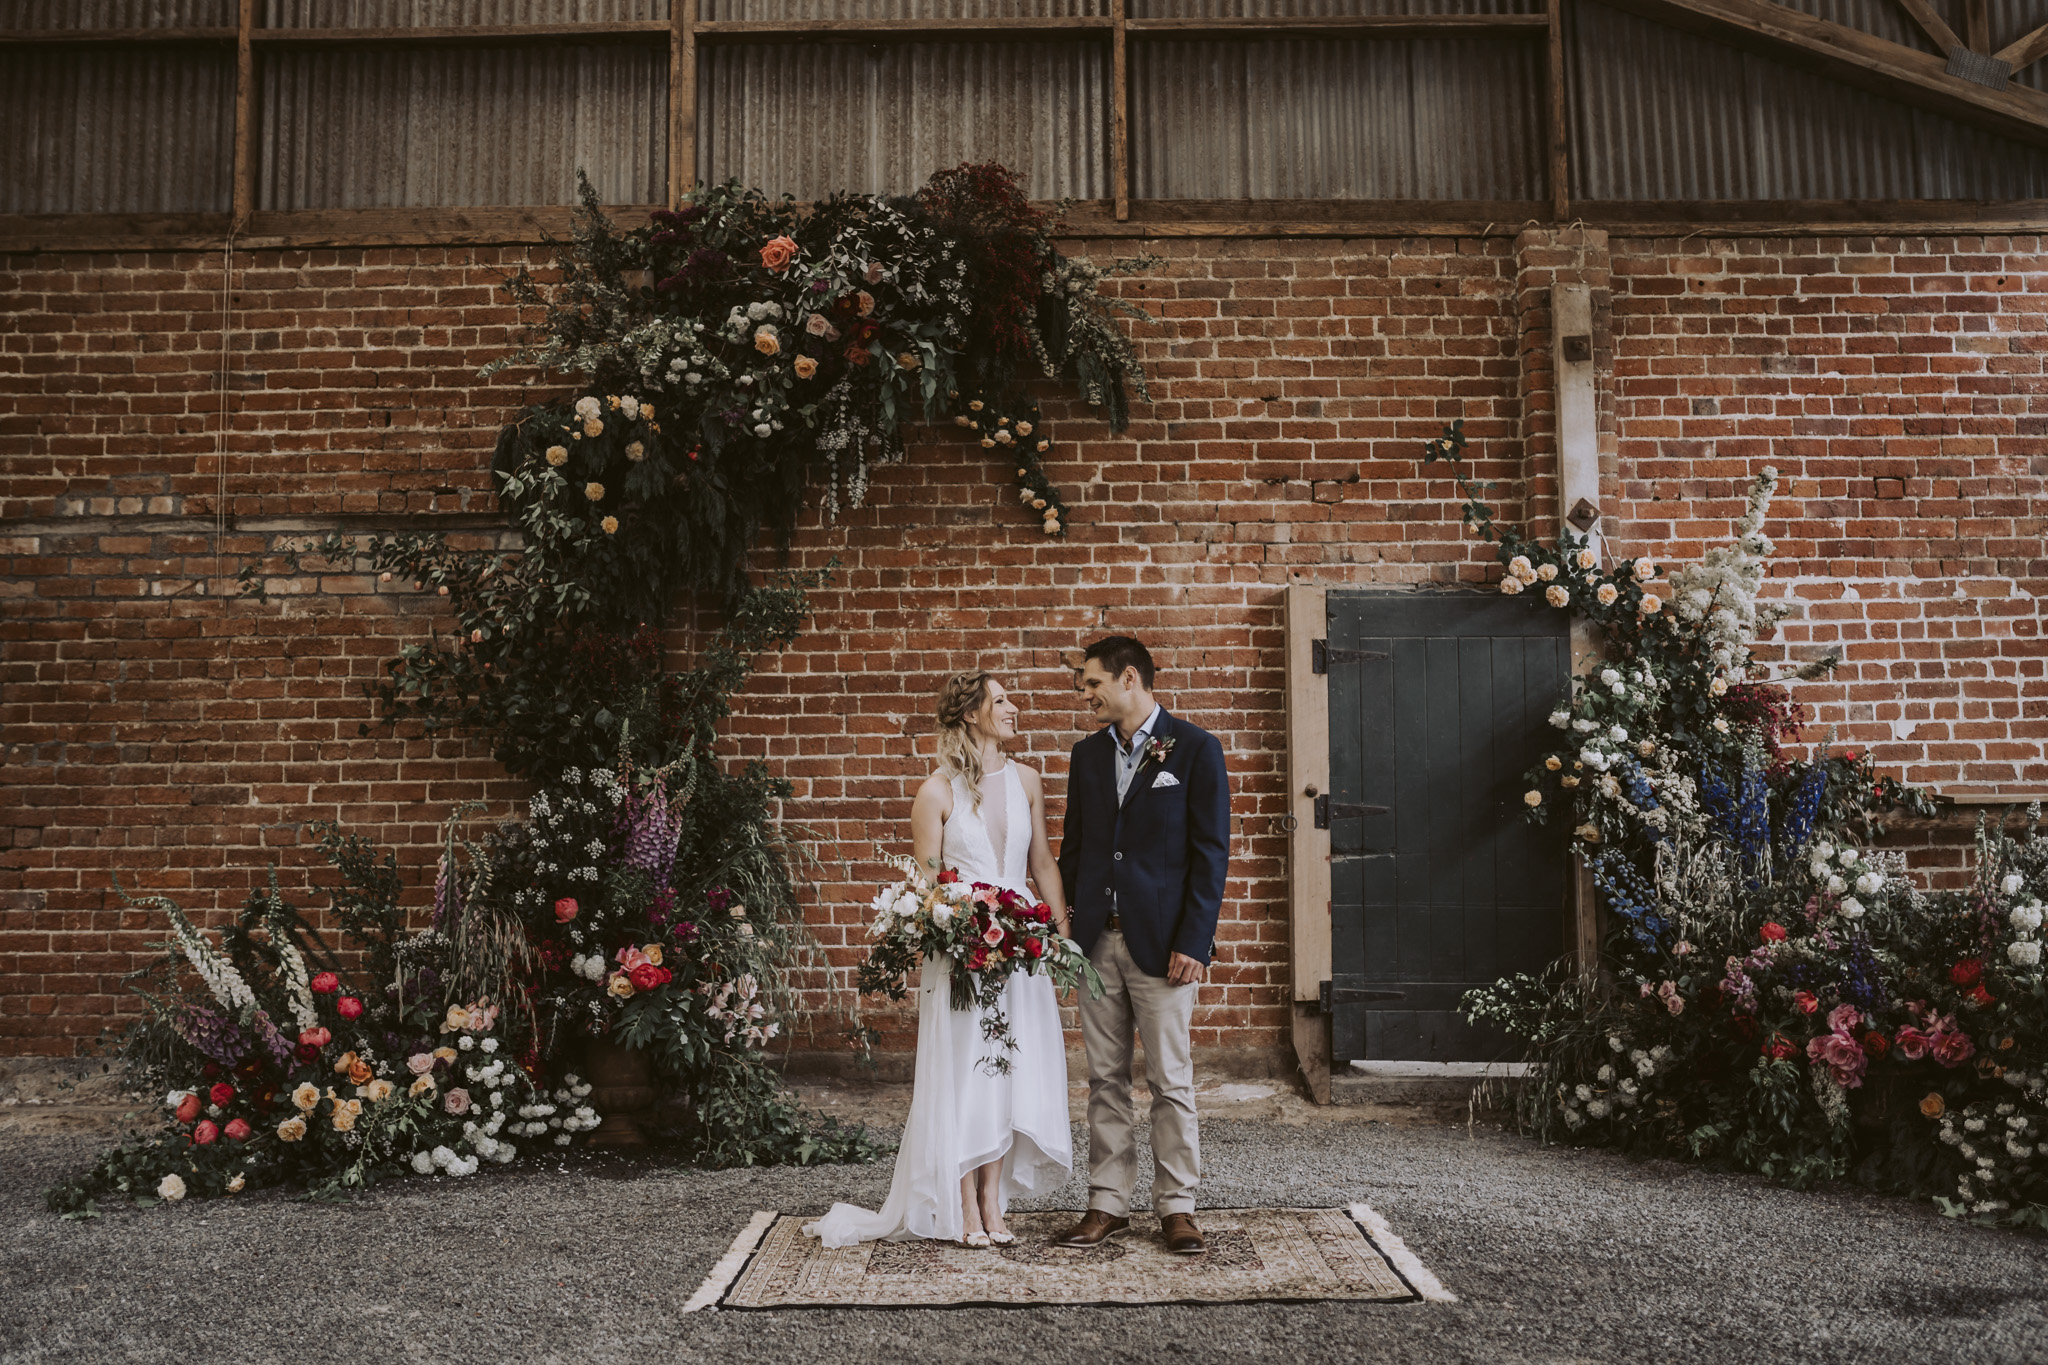 Sharni + Michael surrounded by freaking amazing floral goodness!